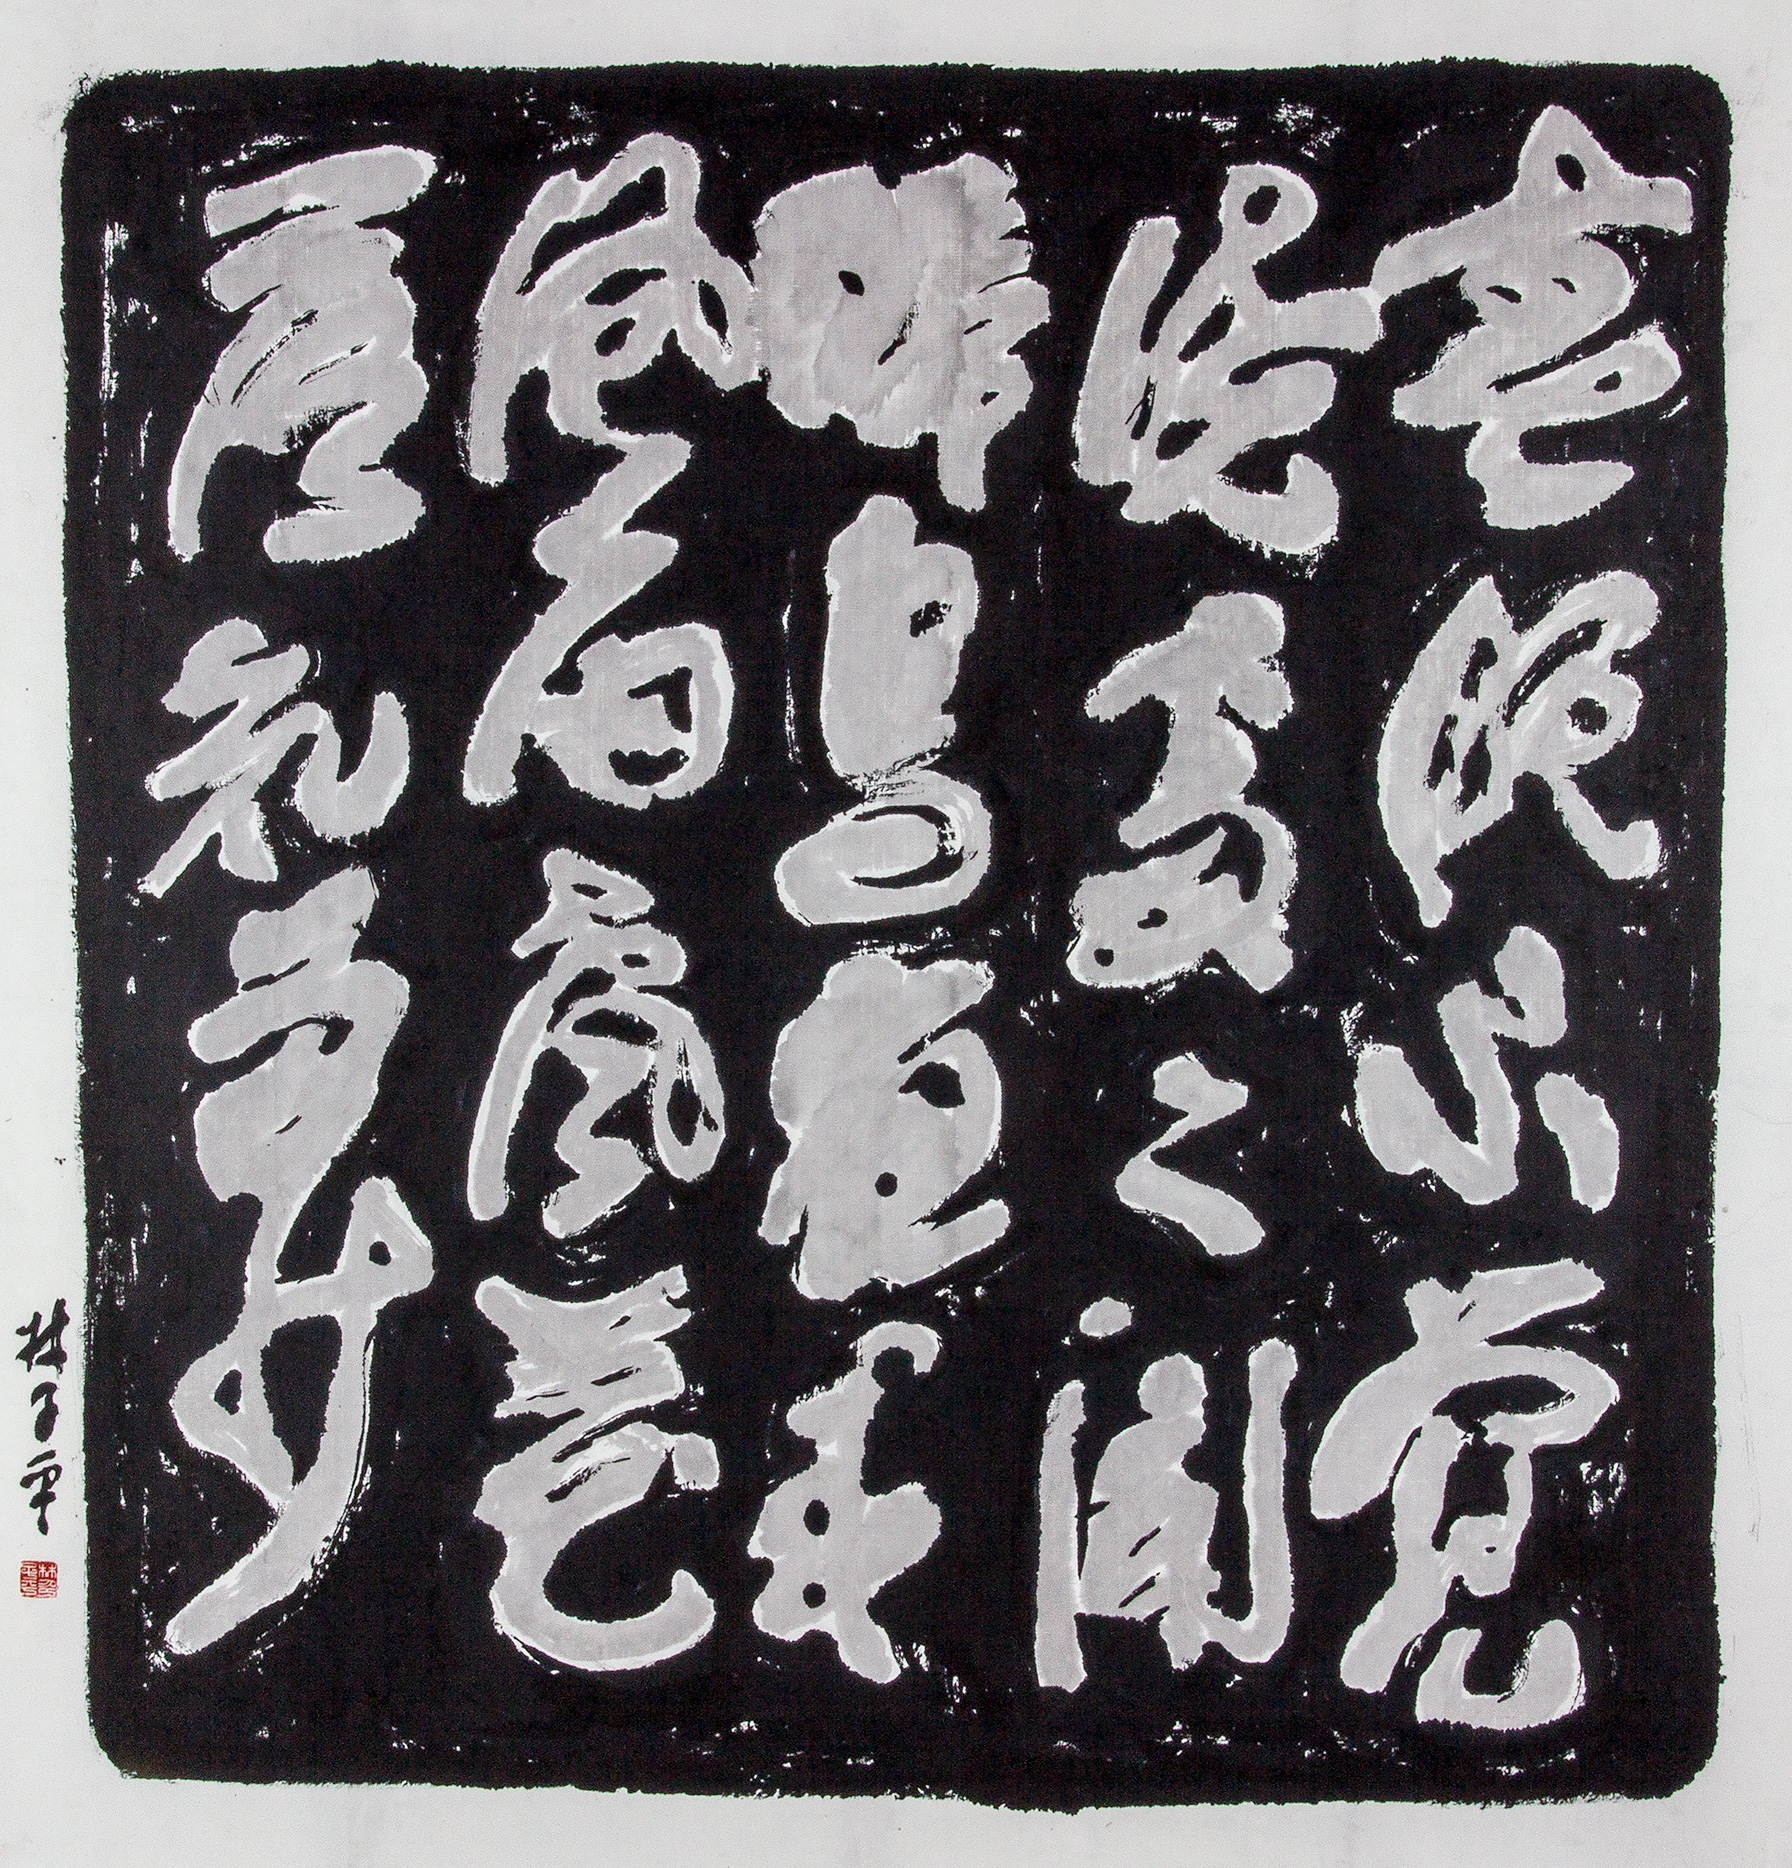 Spring Dawn, a poem by poet Meng Hao Ran, calligraphy piece by Lim Tze Peng, 100 x 100 cm | Lim Tze Peng | Dr Bhau Daji Lad Museum | STIR